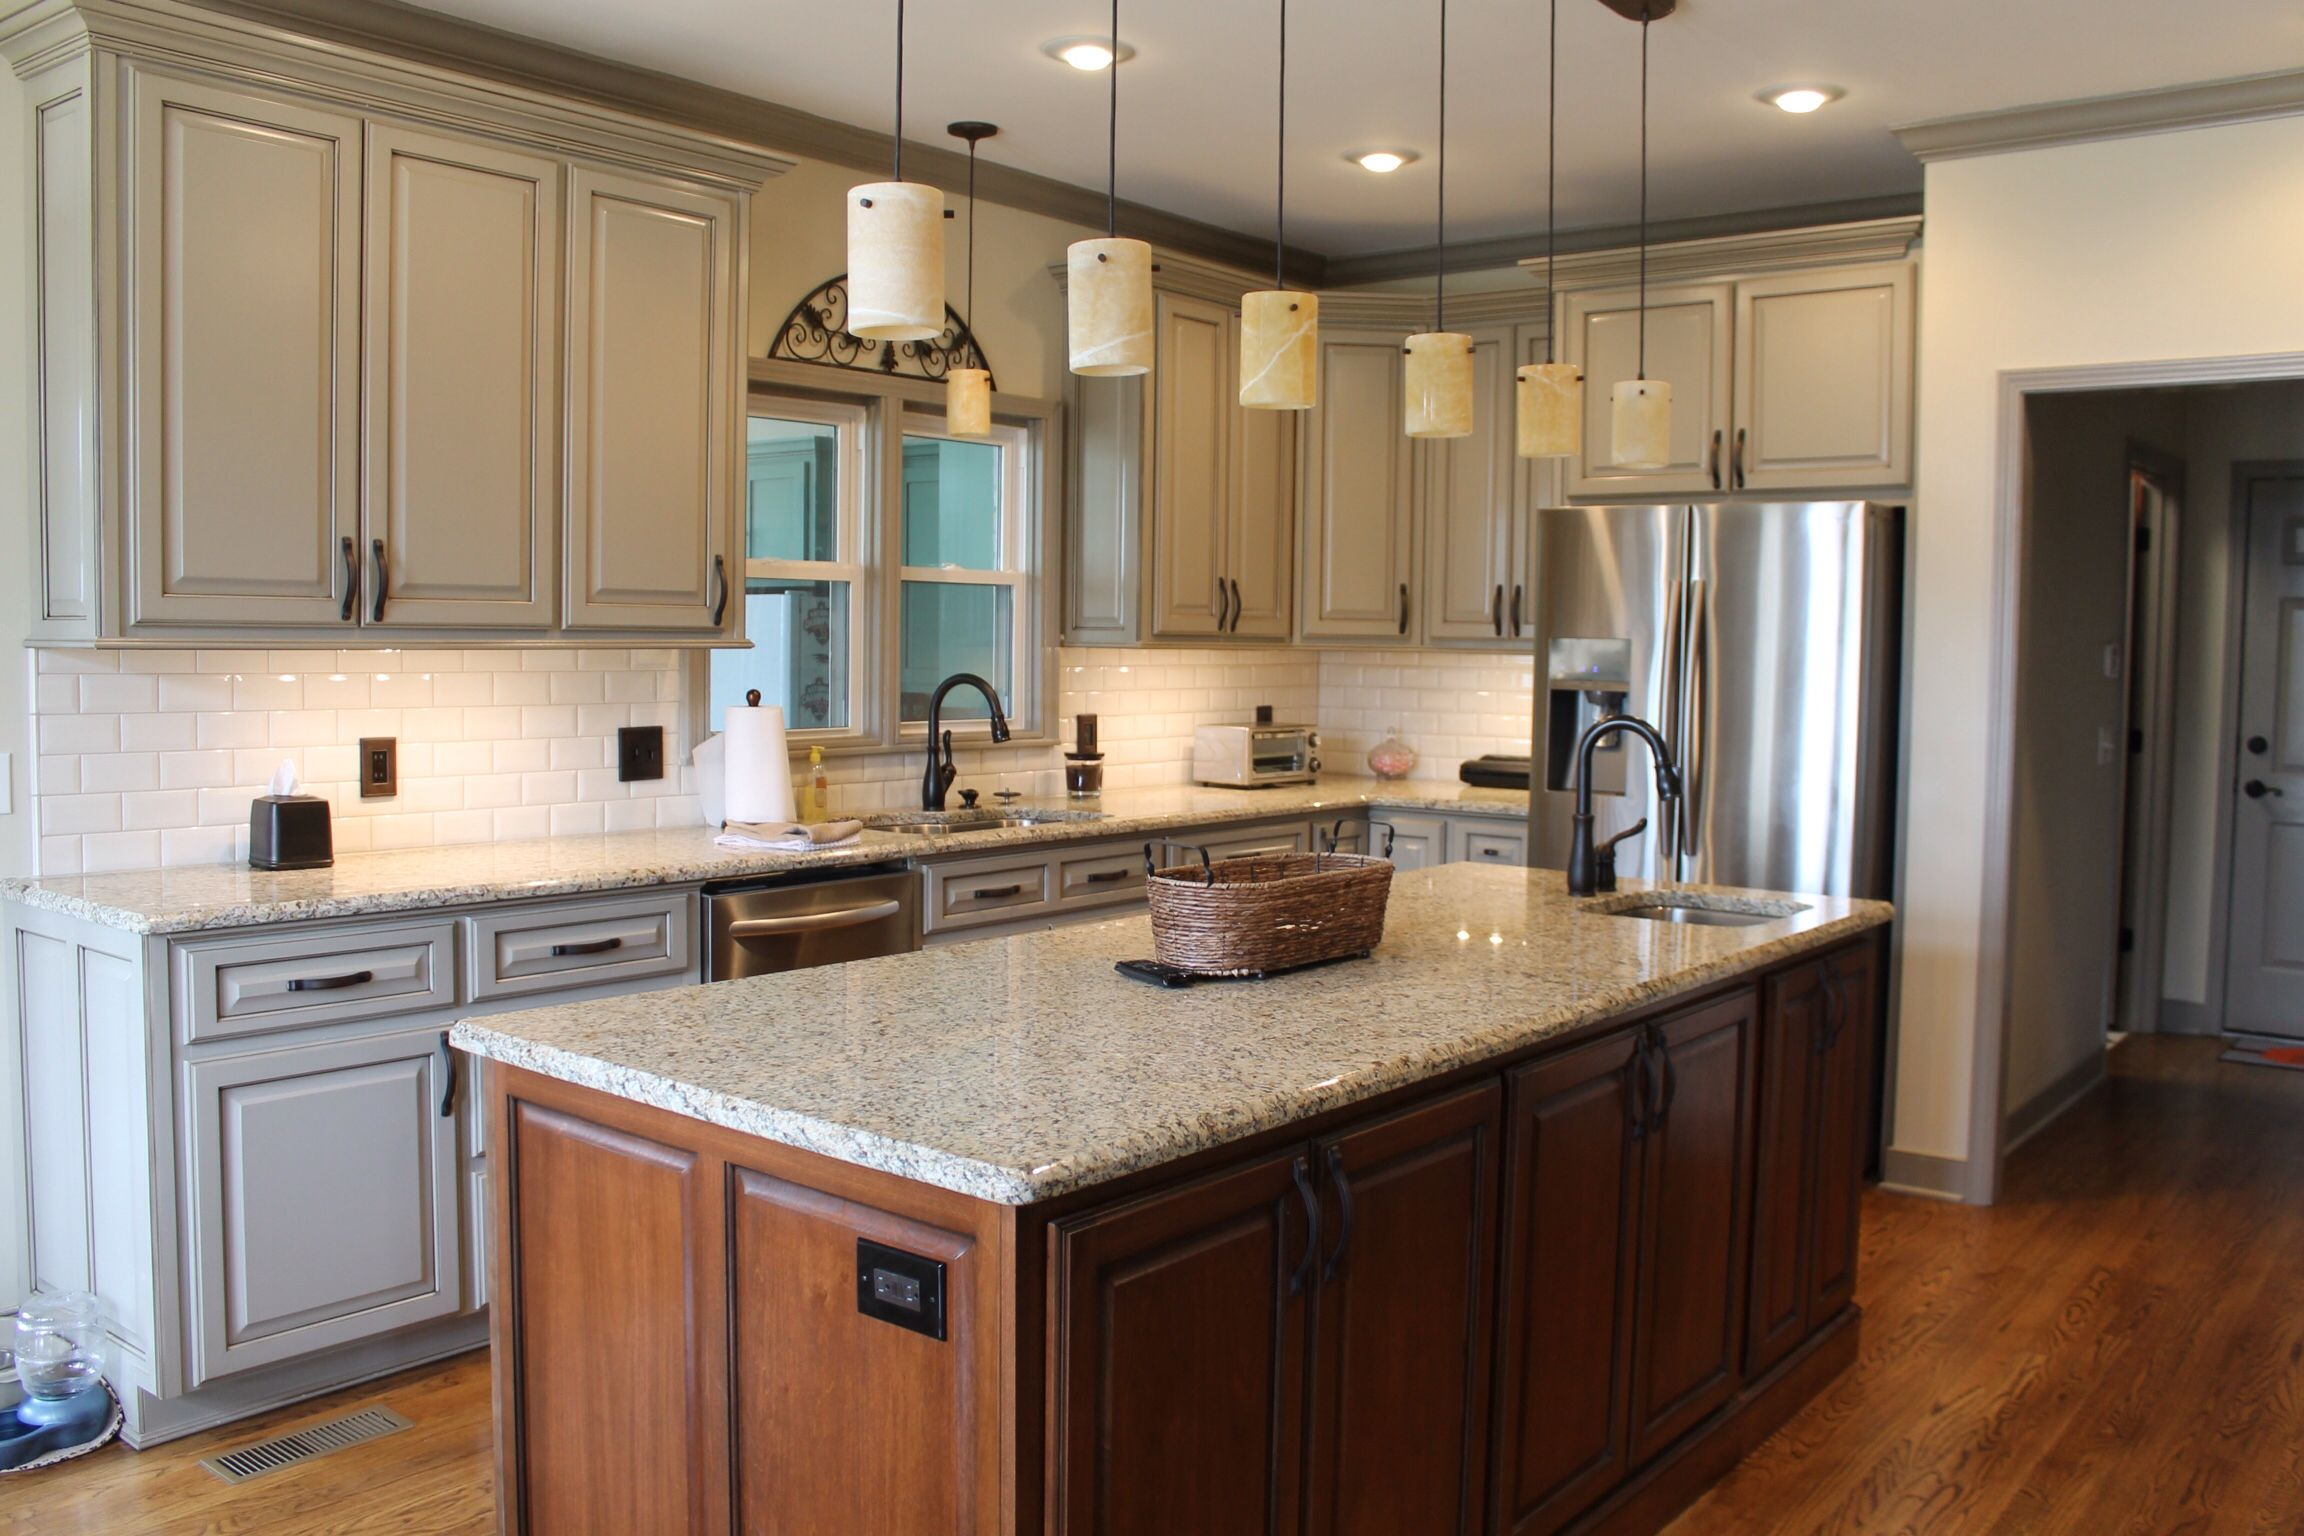 Kitchen Cabinets Painted With Pewter Tankard And Glazed Kitchen Cabinets Pewter Tankard Painting Cabinets